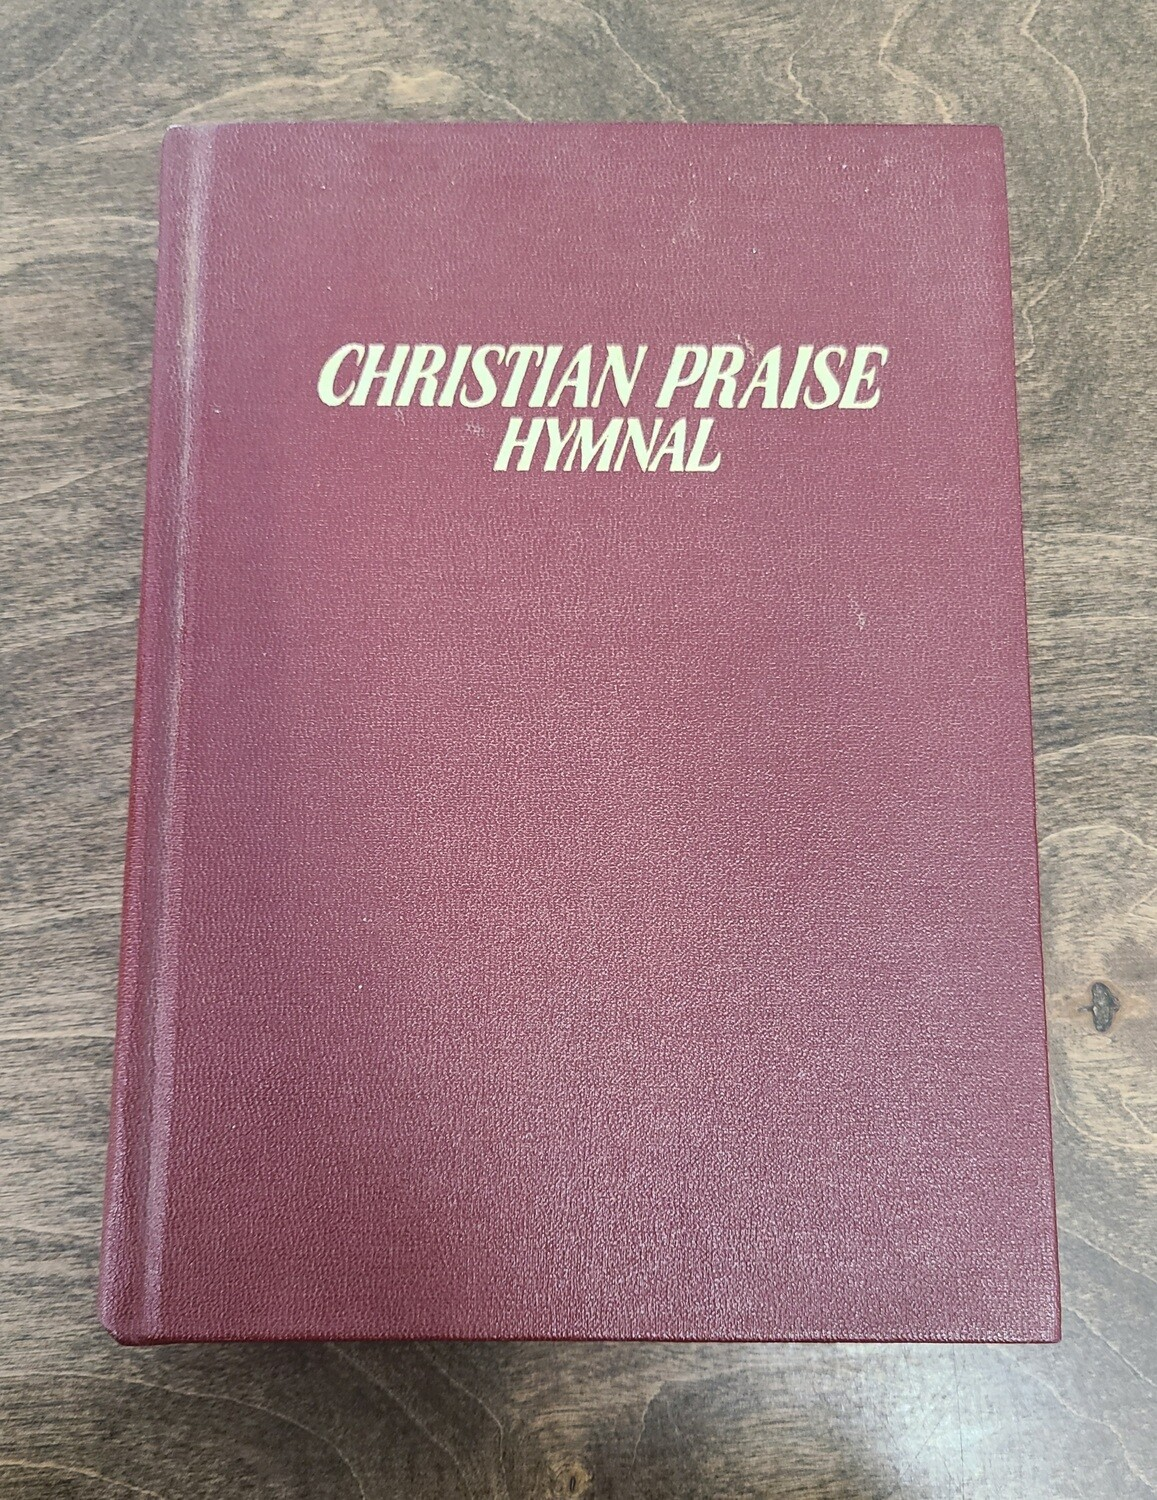 Christian Praise Hymnal by Broadman Press